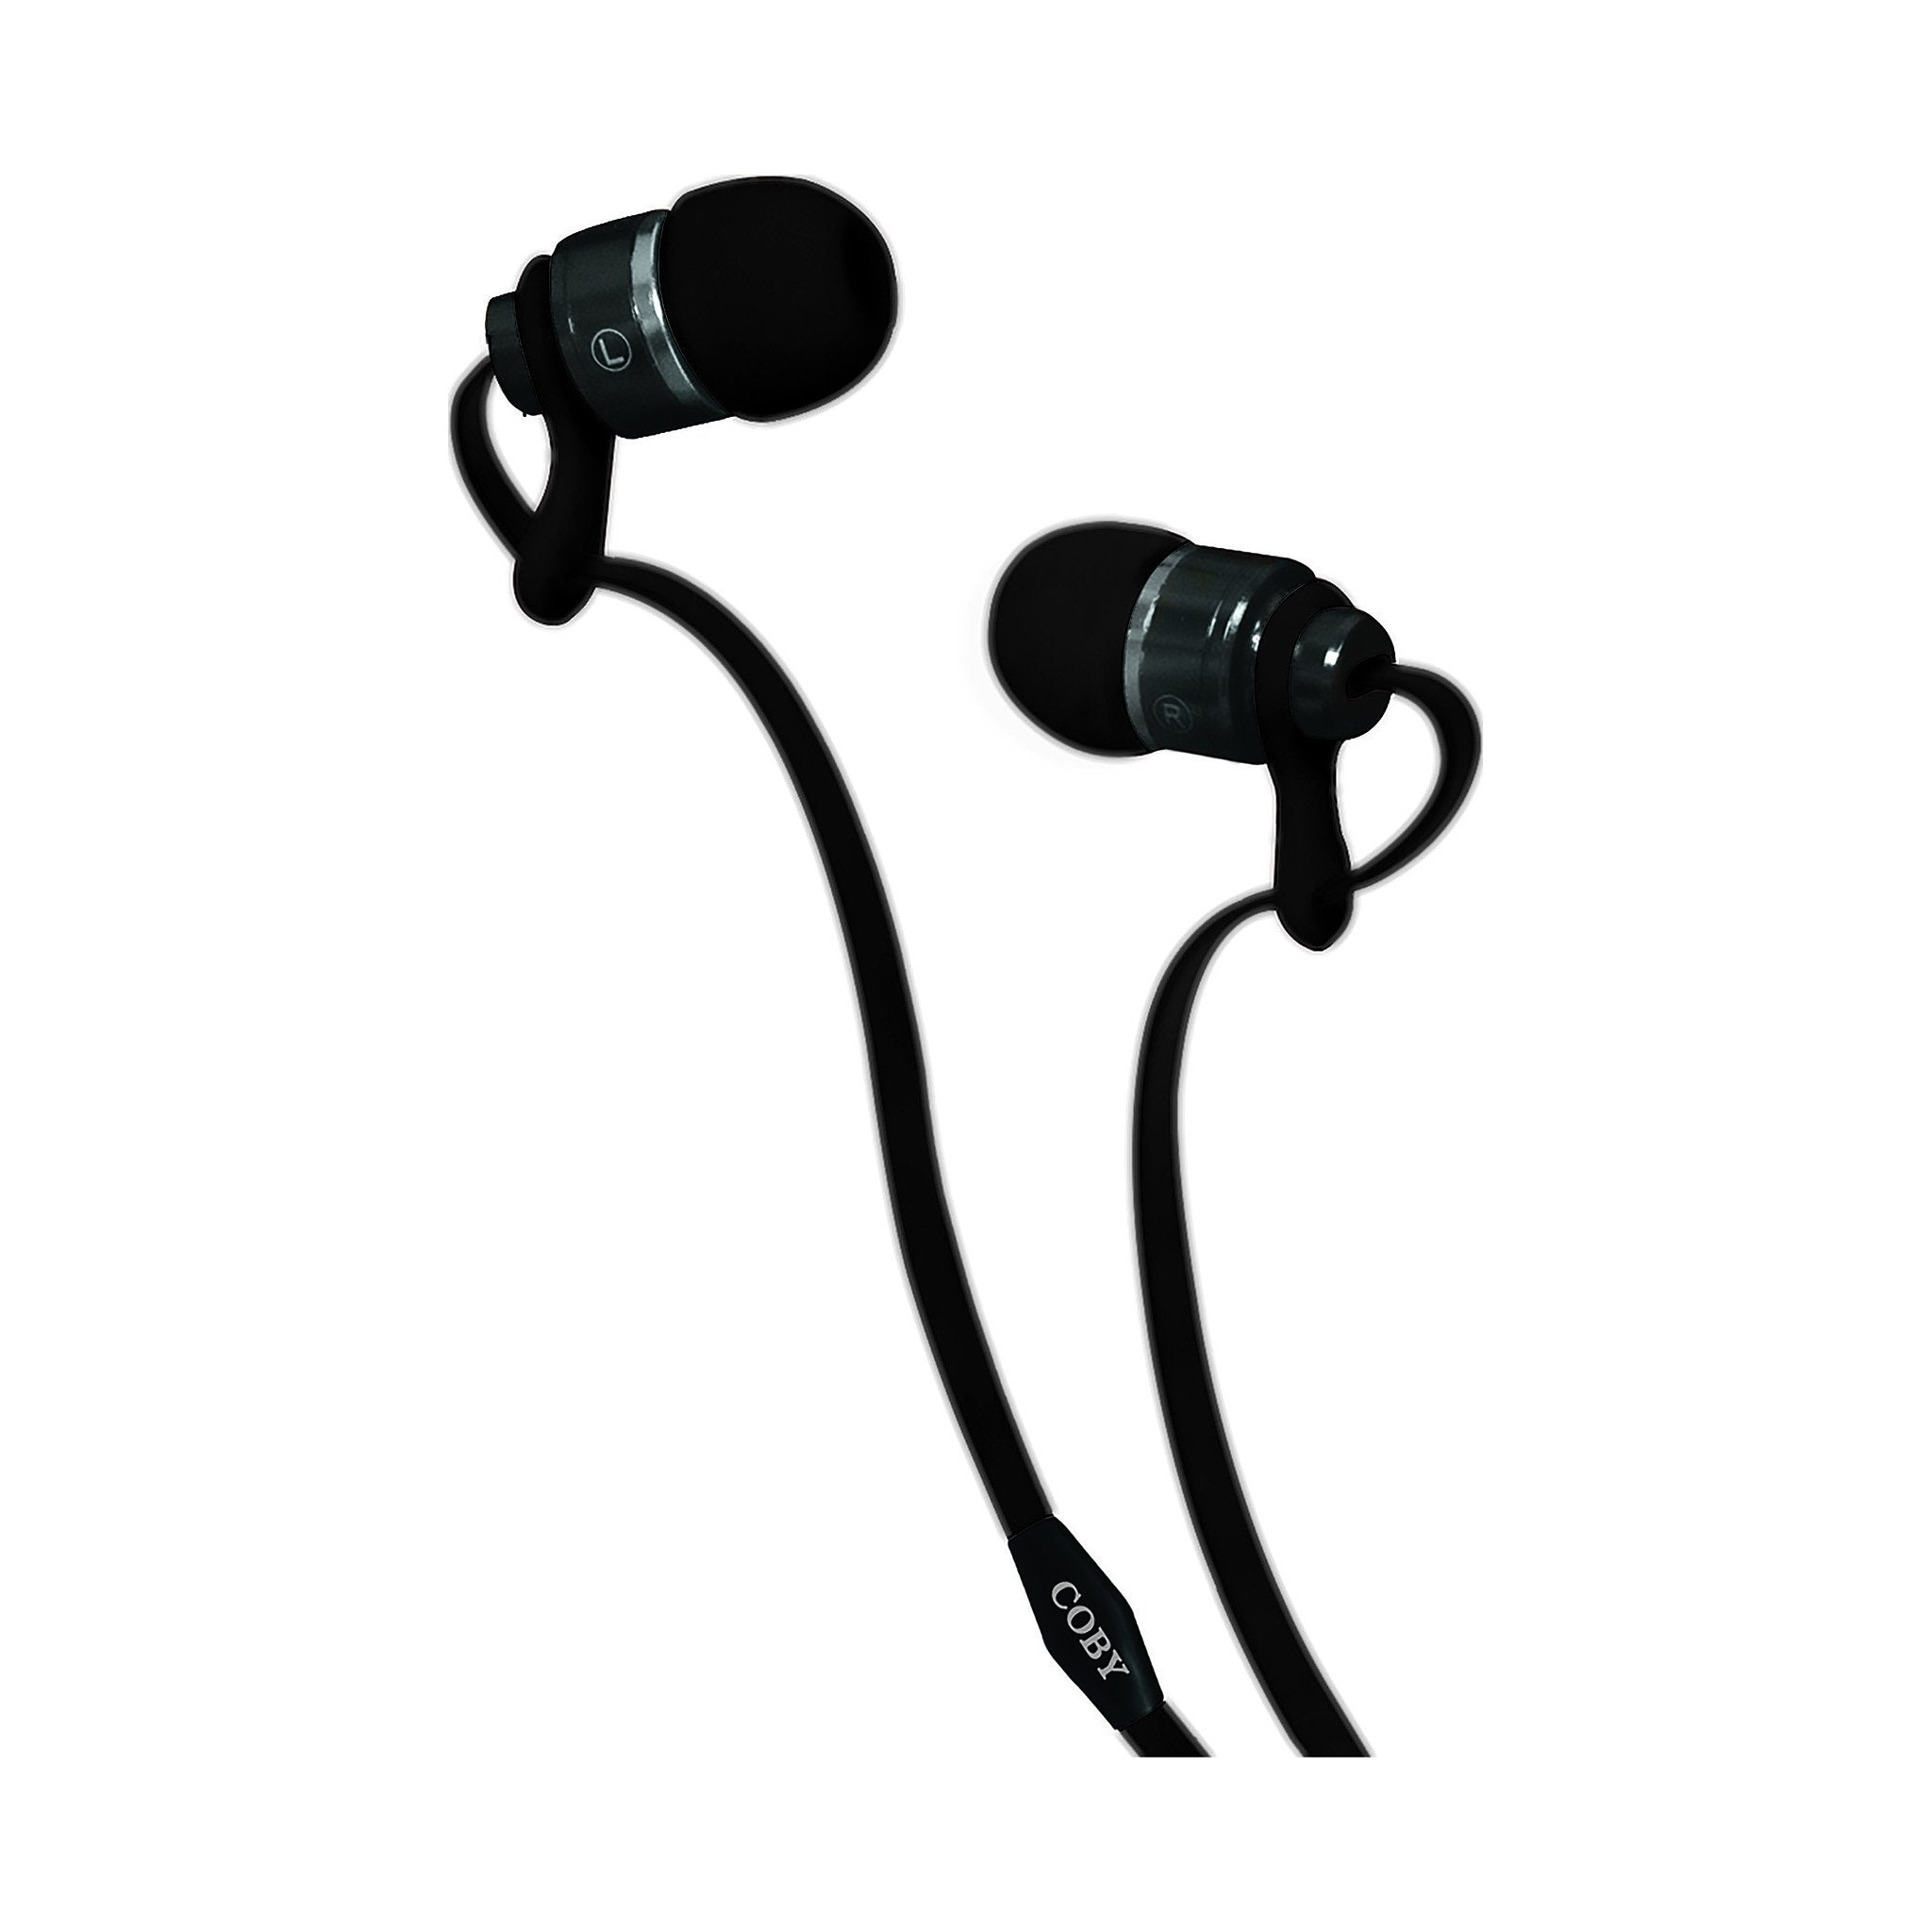 Deluxe Metal Stereo Earbuds